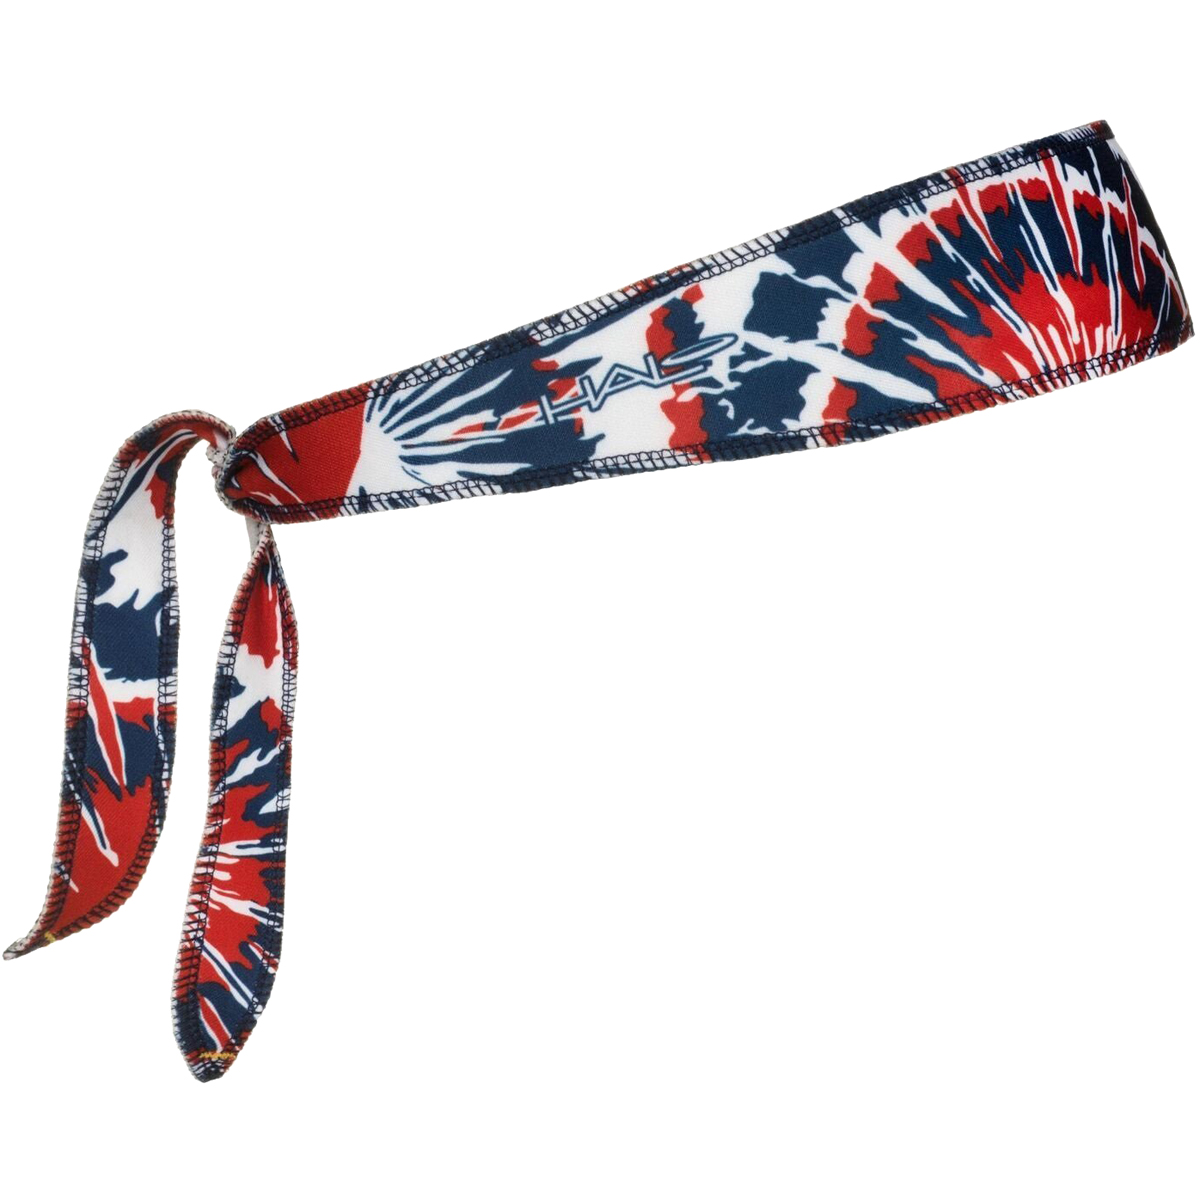 Halo Headband Tie Version I Sweatband - Red/White/Blue Tie-Dye